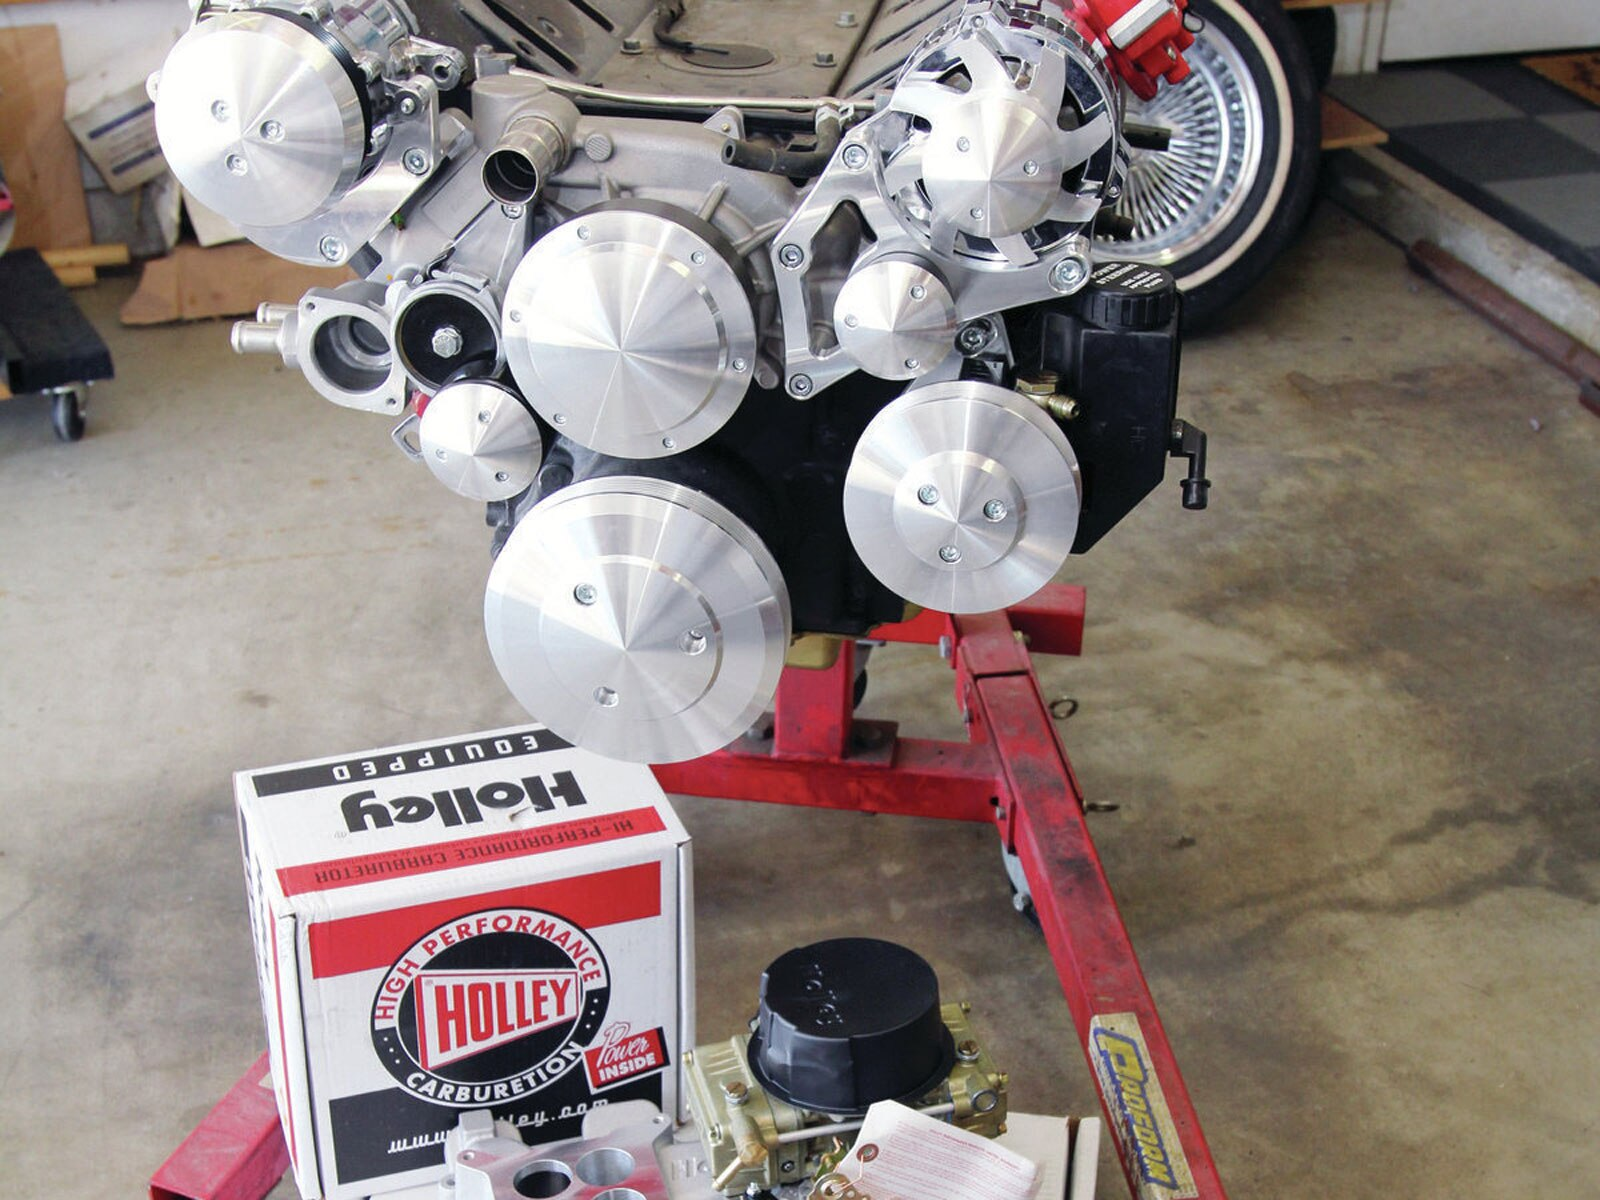 1210-lrmp-01-z-new-school-old-school-intake-swap-holly-carb